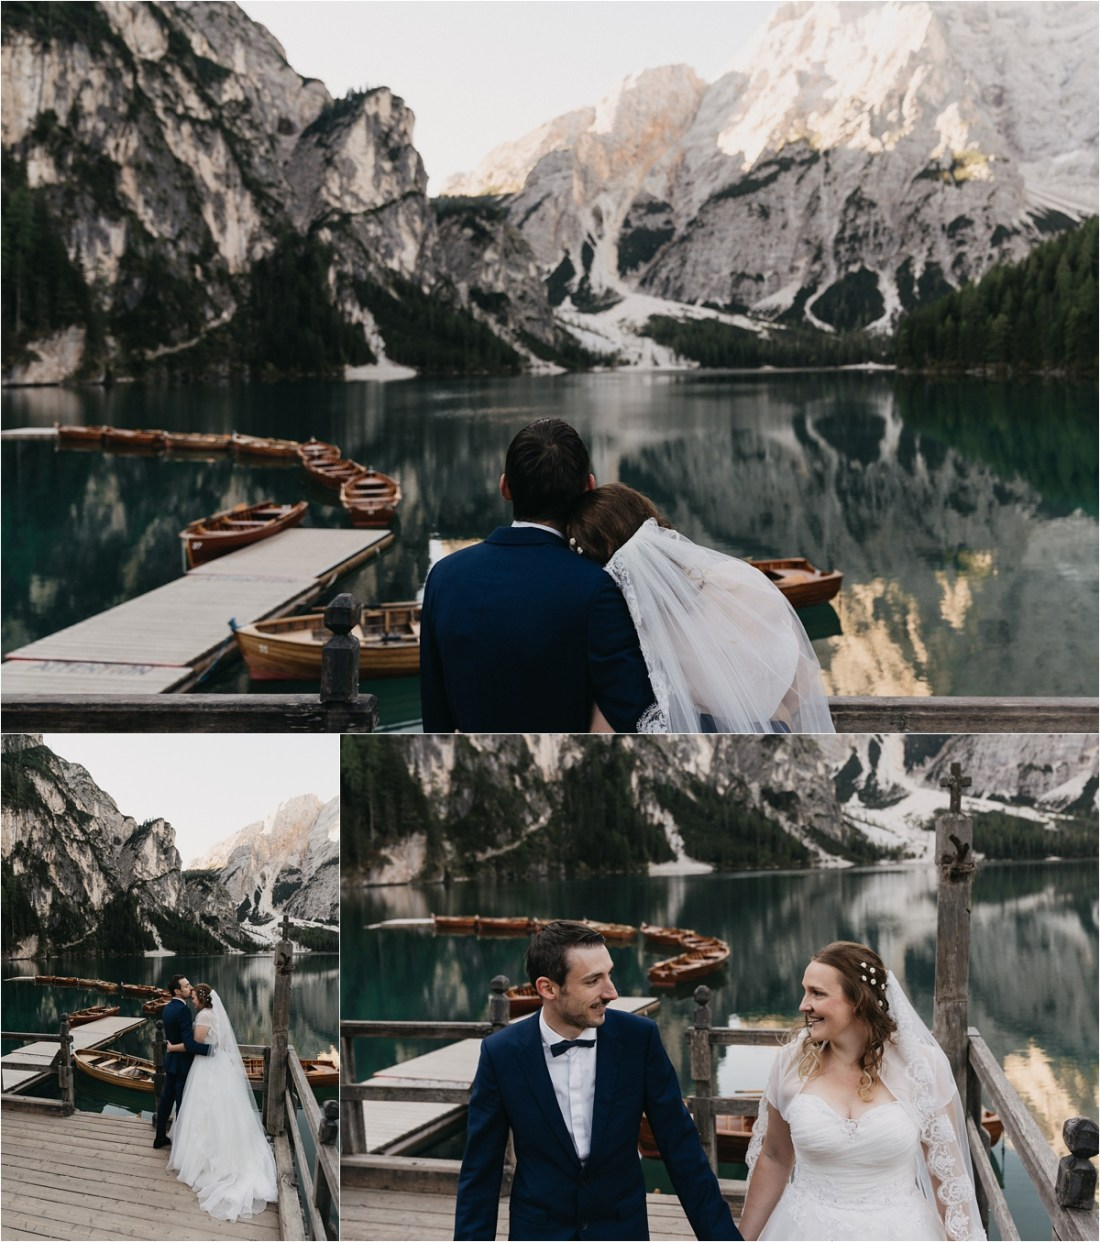 Bride and groom on the boat house at Pragser Wildsee by Christina Puszkar